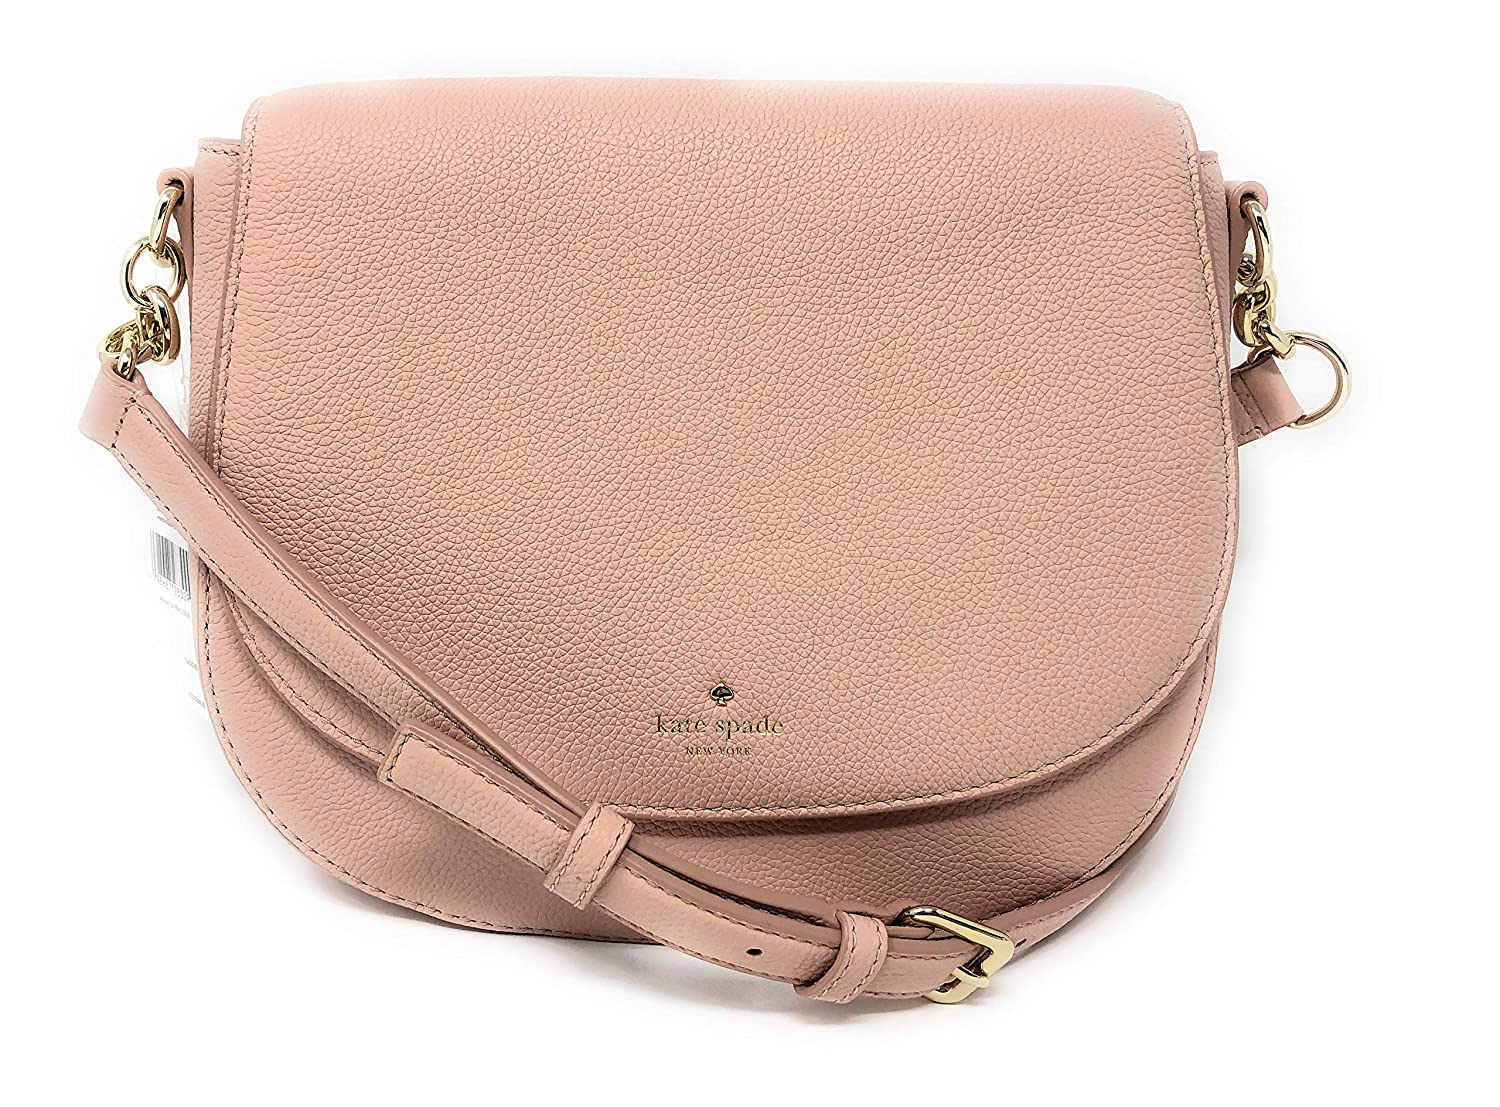 special discount of new product discount price Kate Spade New York Saffron Larchmont Avenue Leather ...